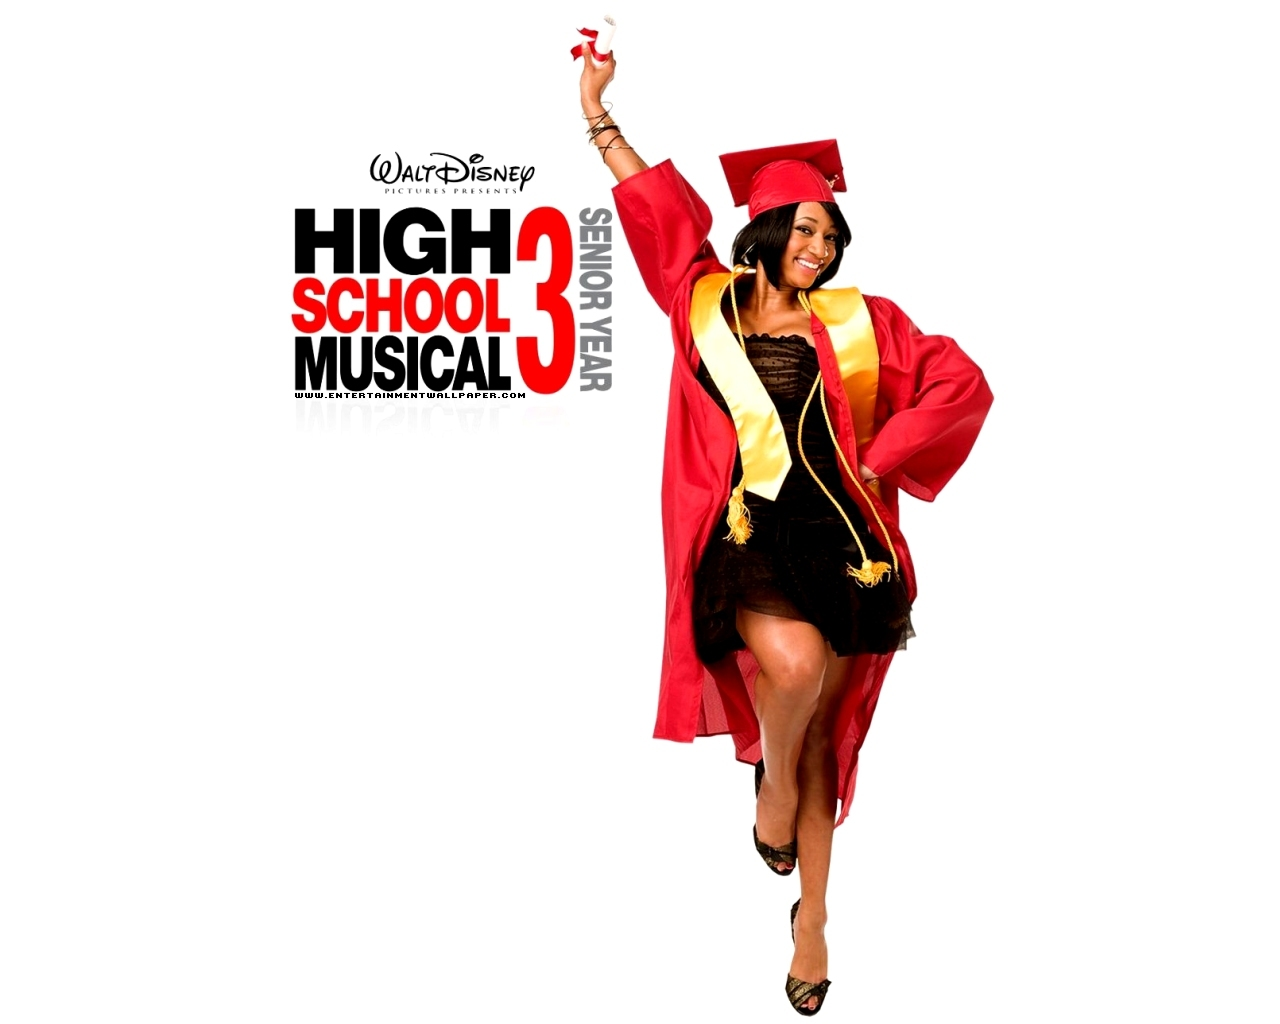 Home Sewn by New Zealand Fashion Museum Penguin Random Coloring pictures of high school musical